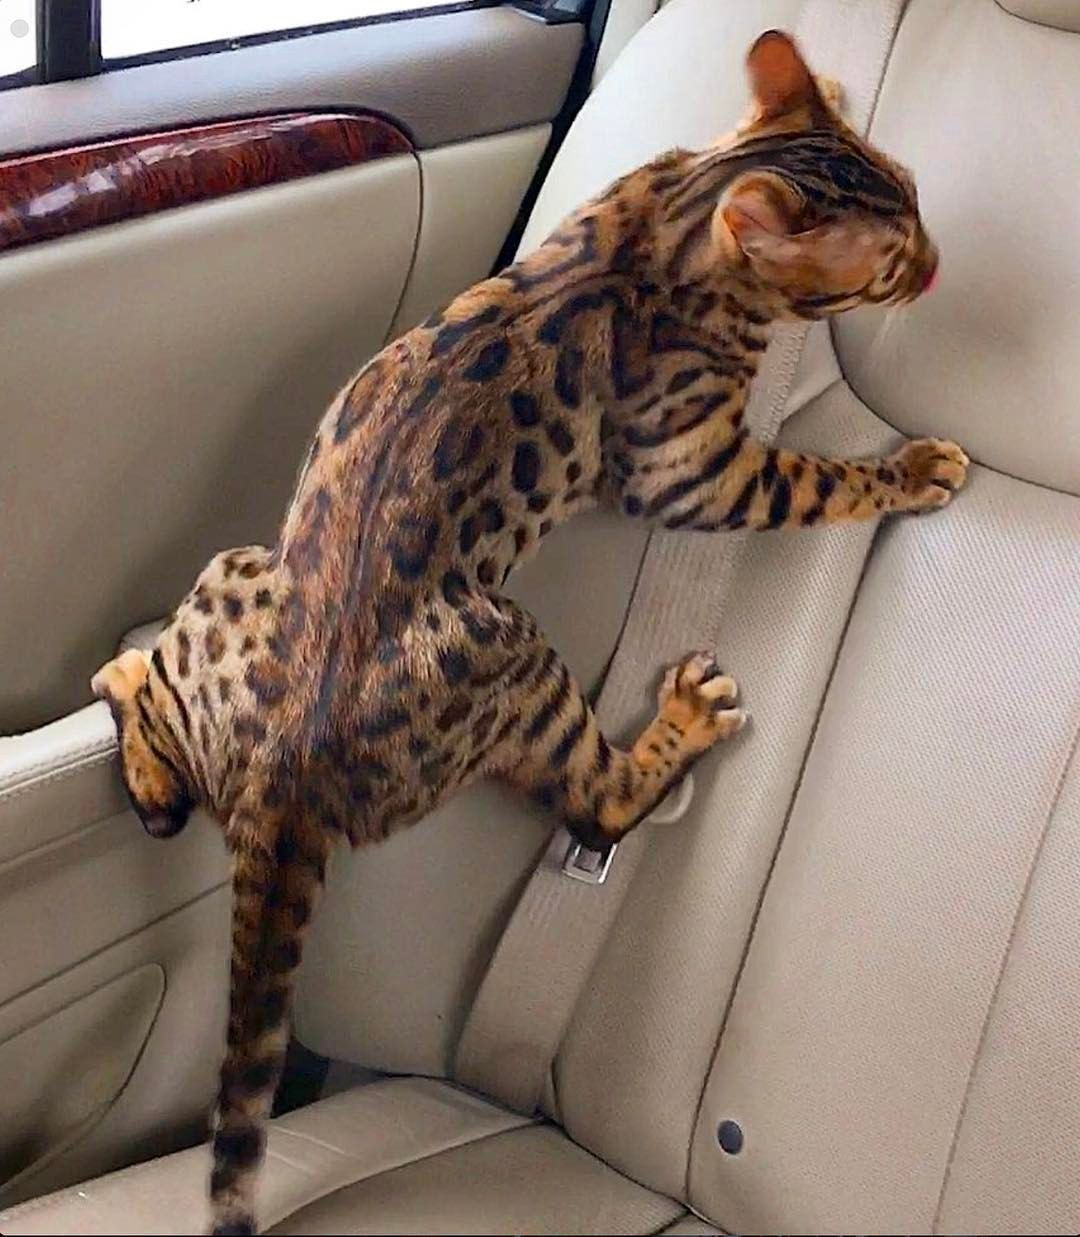 Jaspur Acting Like A Monkey By Jaspurbengalkitty Tap The Link For An Awesome Selection Cat And Kitten Products Kittens Cutest Bengal Cat Bengal Cat Facts